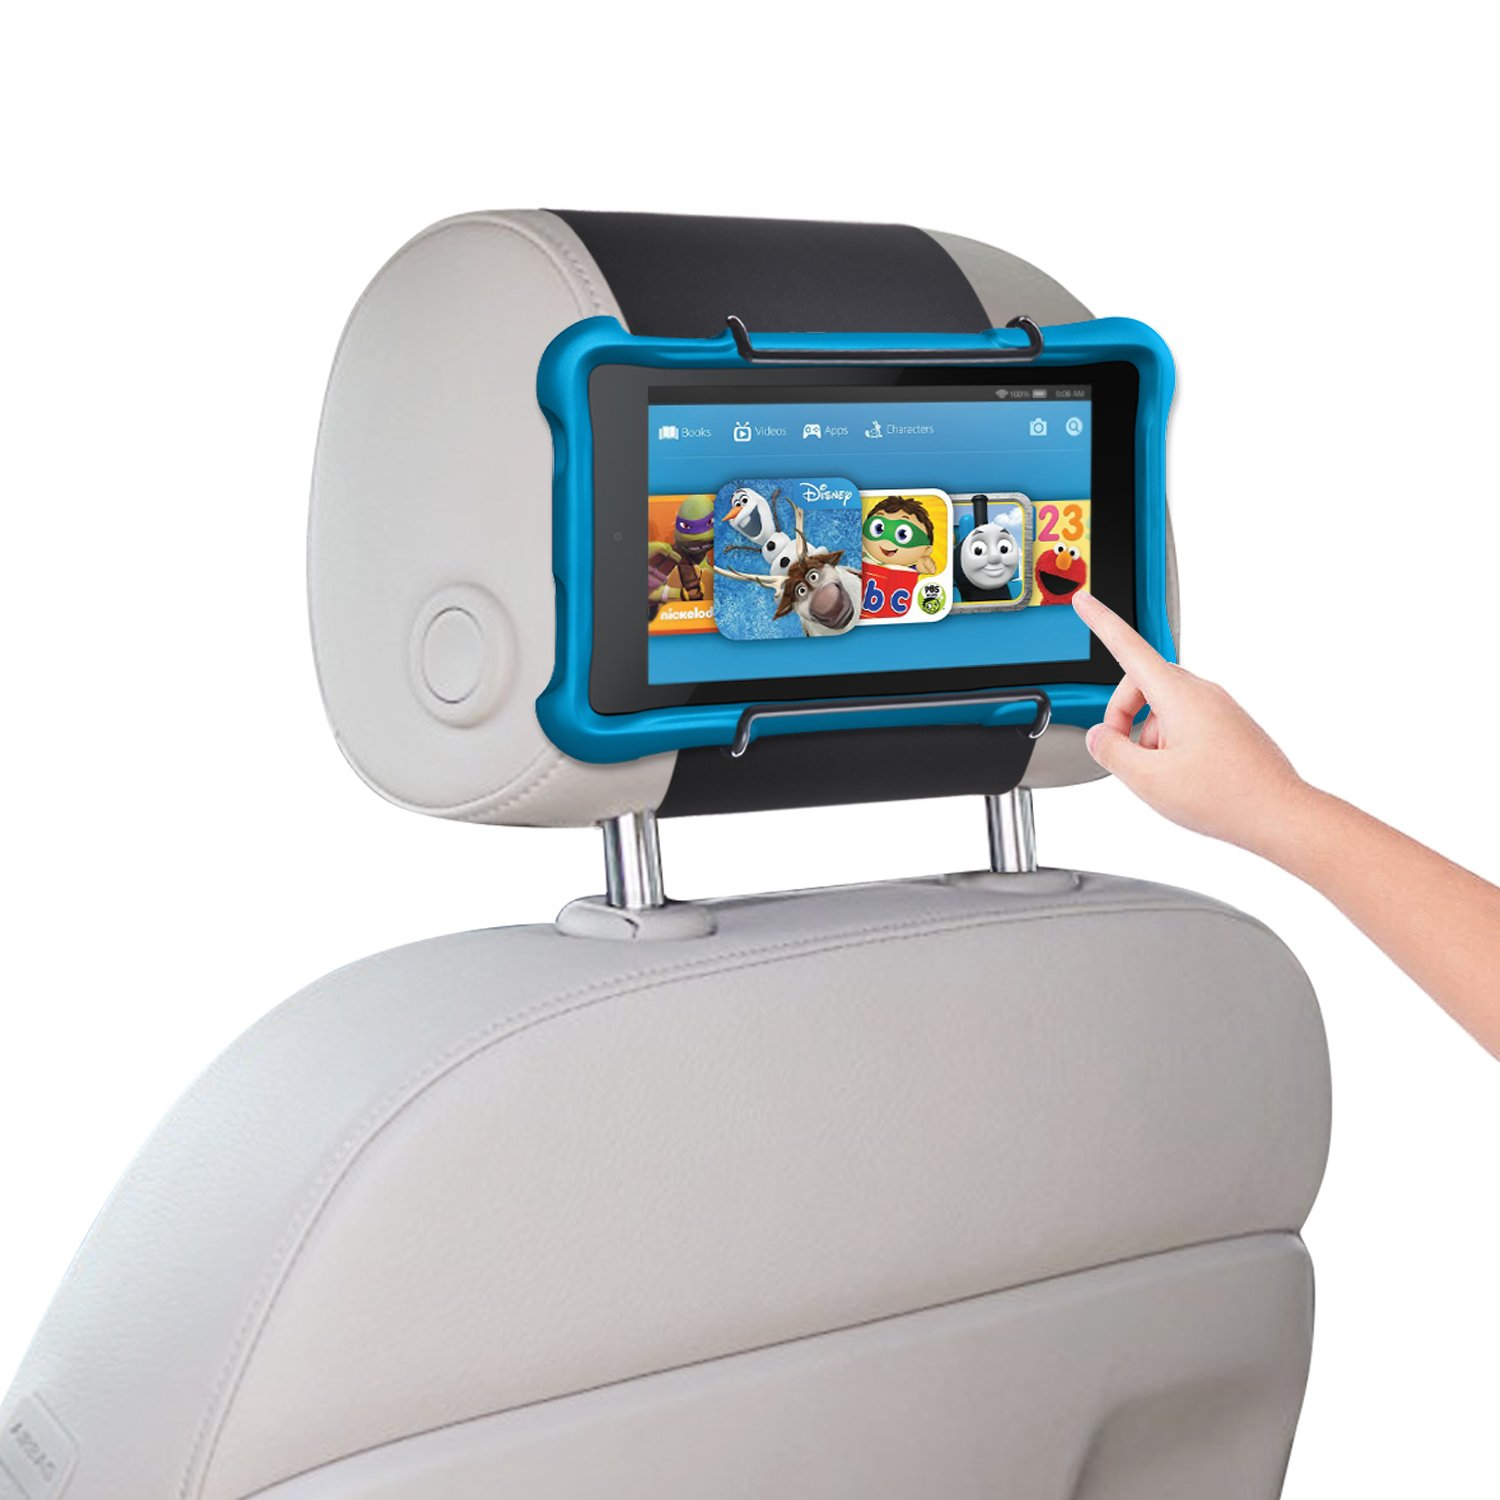 Car Headrest Holder WANPOOL Car Headrest Mount for Kindle Fire Tablet 7''/Fire HD 8/Fire HD 10/Kindle Fire HD 7'' and Other Tablets, Black